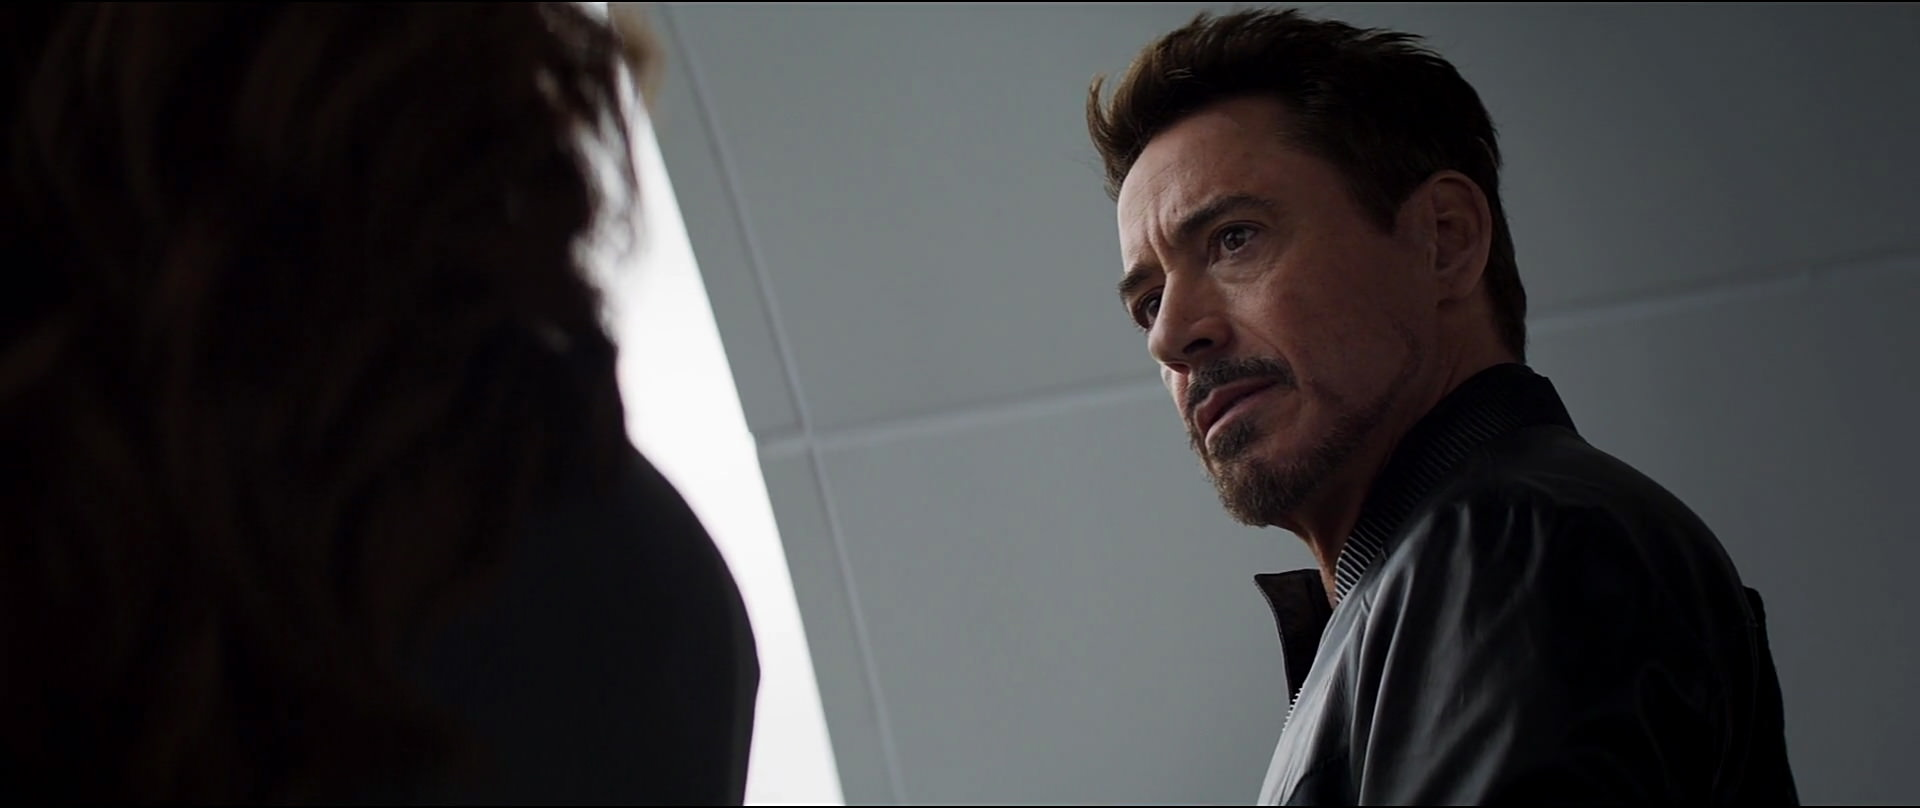 http://caps.pictures/201/6-civil-war/full/cap-civil-war-movie-screencaps.com-12887.jpg